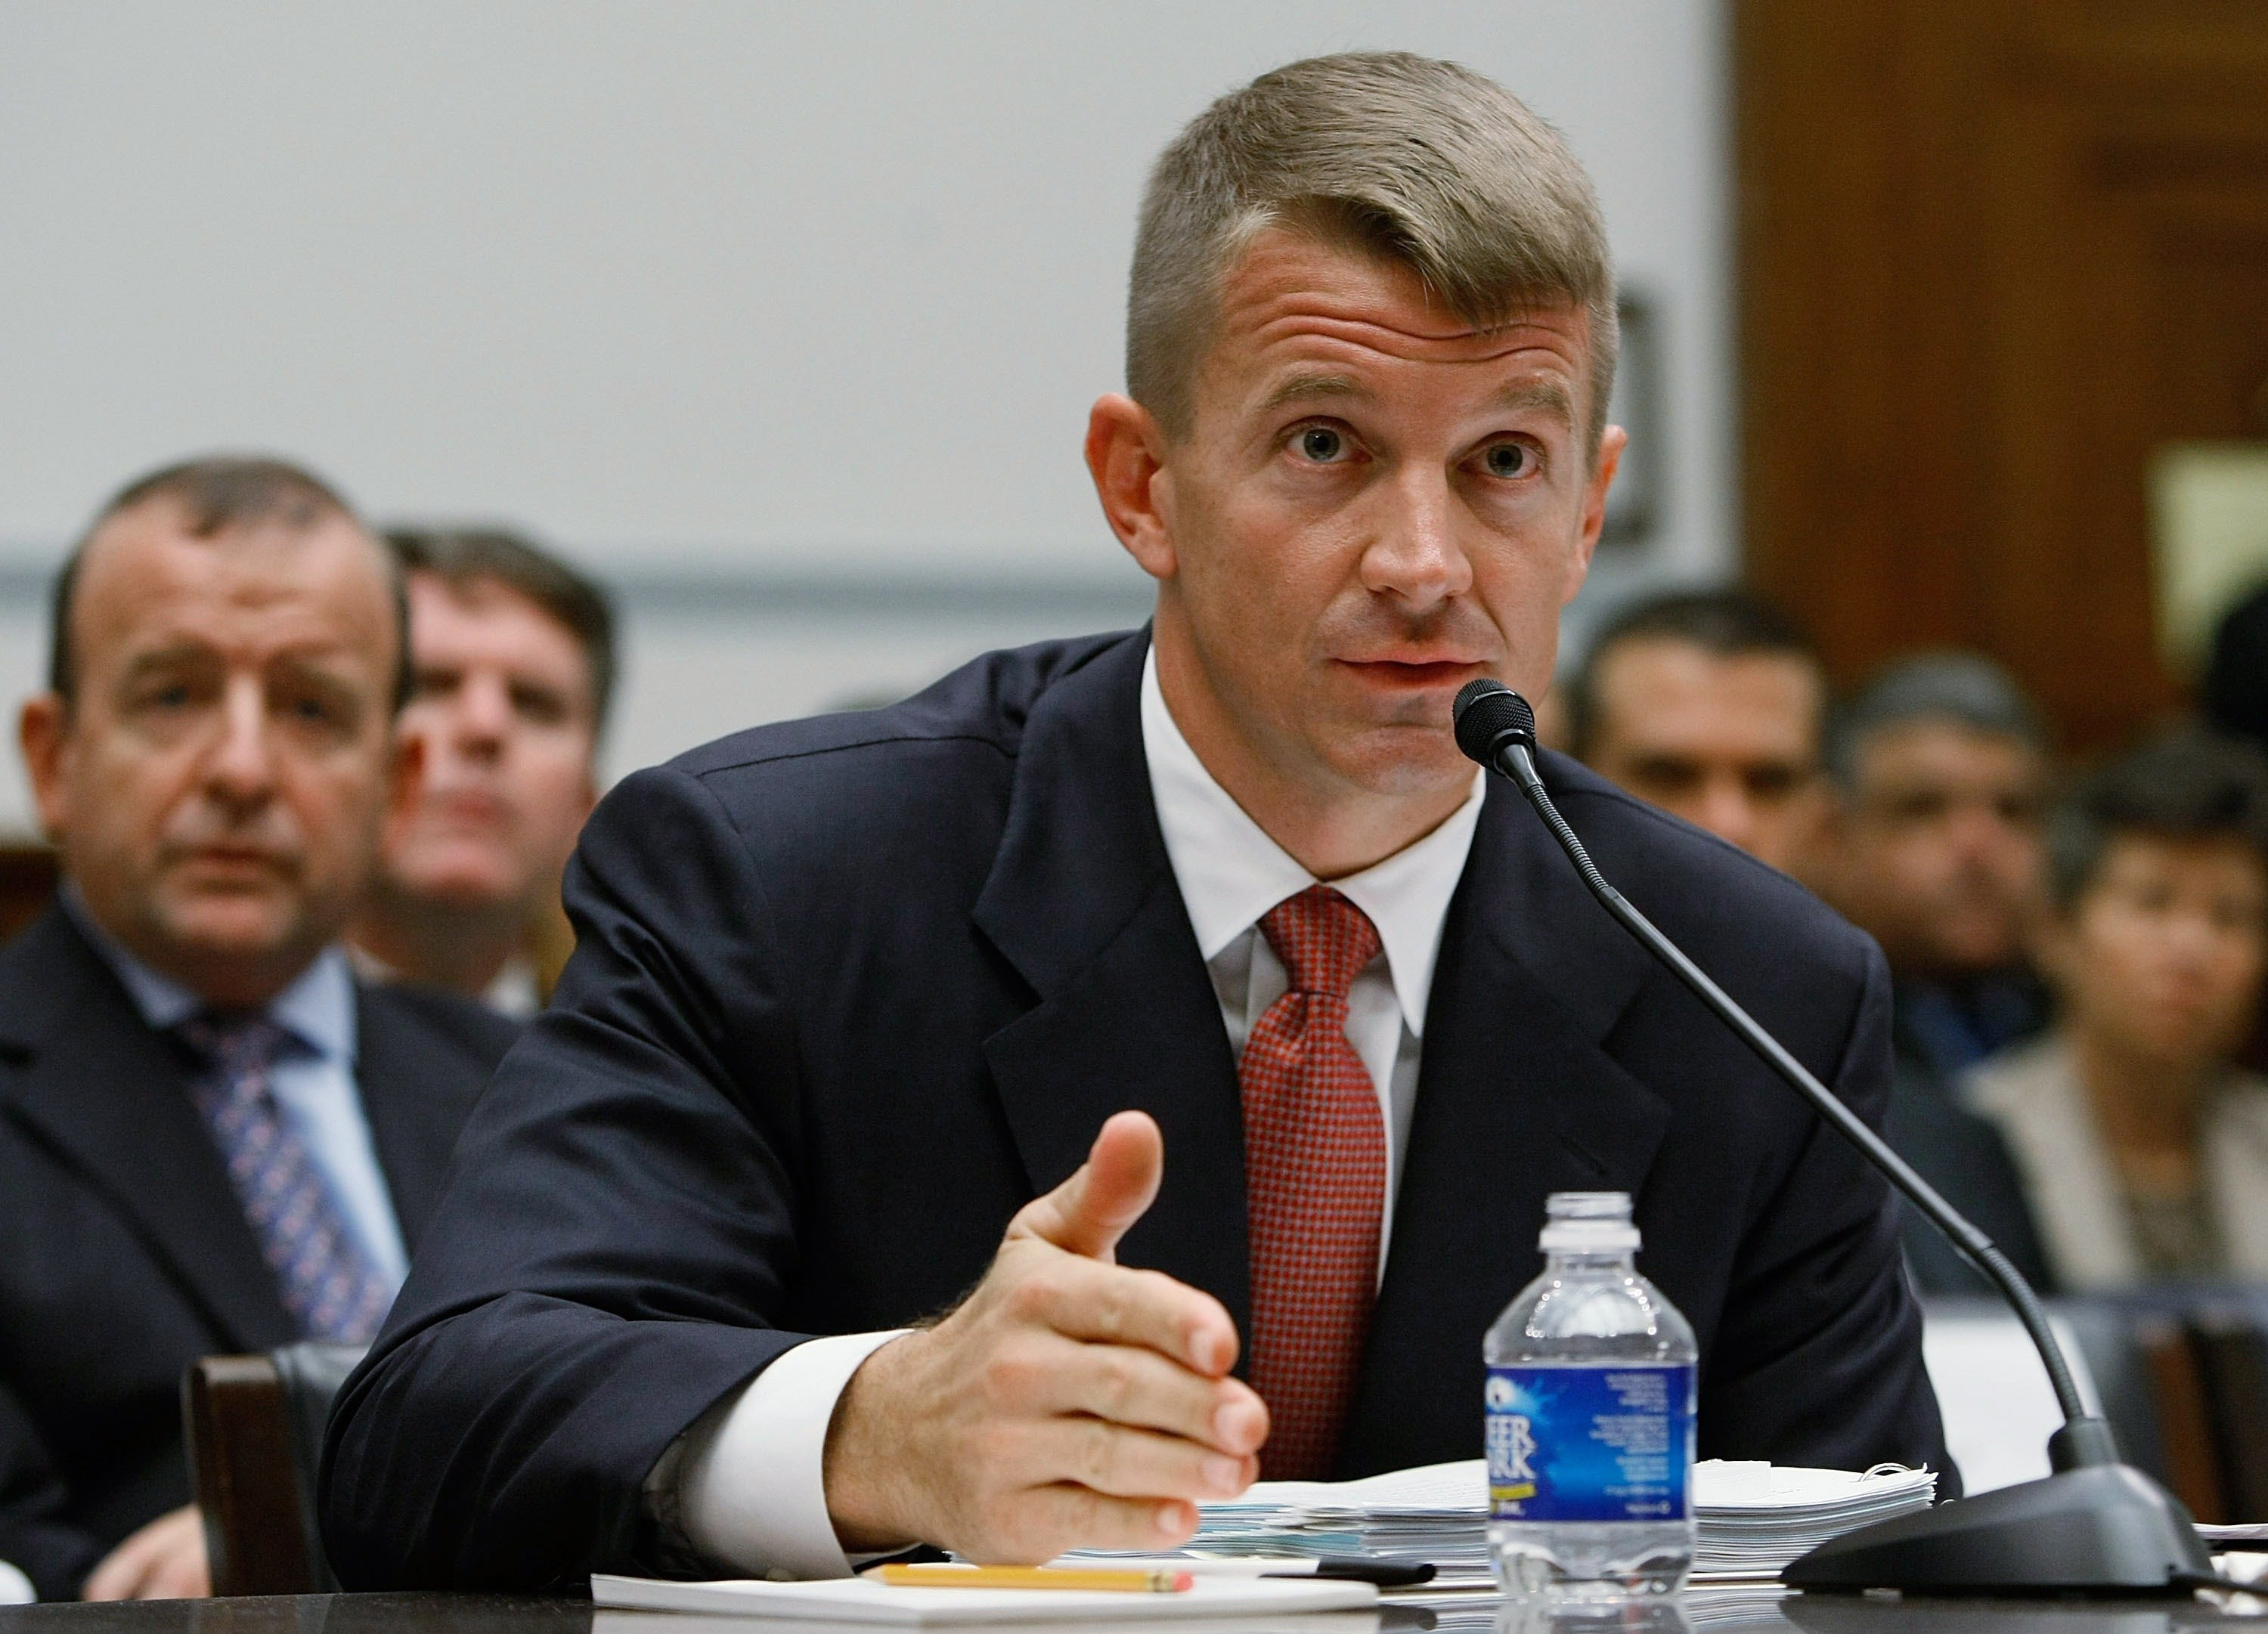 WASHINGTON - OCTOBER 02: Erik Prince, chairman of the Prince Group, LLC and Blackwater USA, tesifies during a House Oversight and Government Reform Committee hearing on Capitol Hill October 2, 2007 in Washington, DC. The committee is hearing testimony from officials regarding private security contracting in Iraq and Afghanistan. (Photo by Mark Wilson/Getty Images)